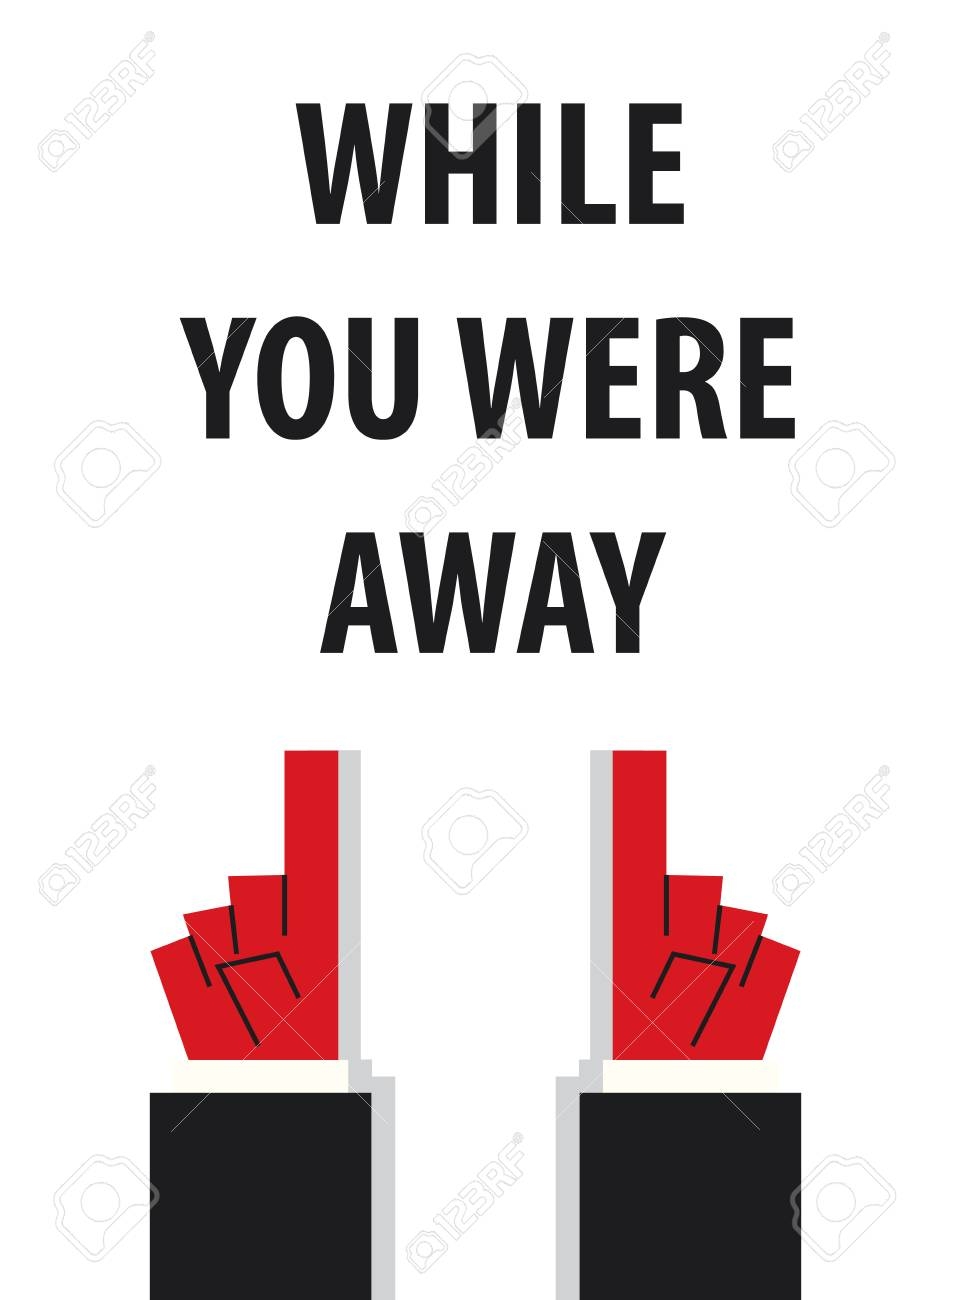 WHILE YOU WERE AWAY typography vector illustration.